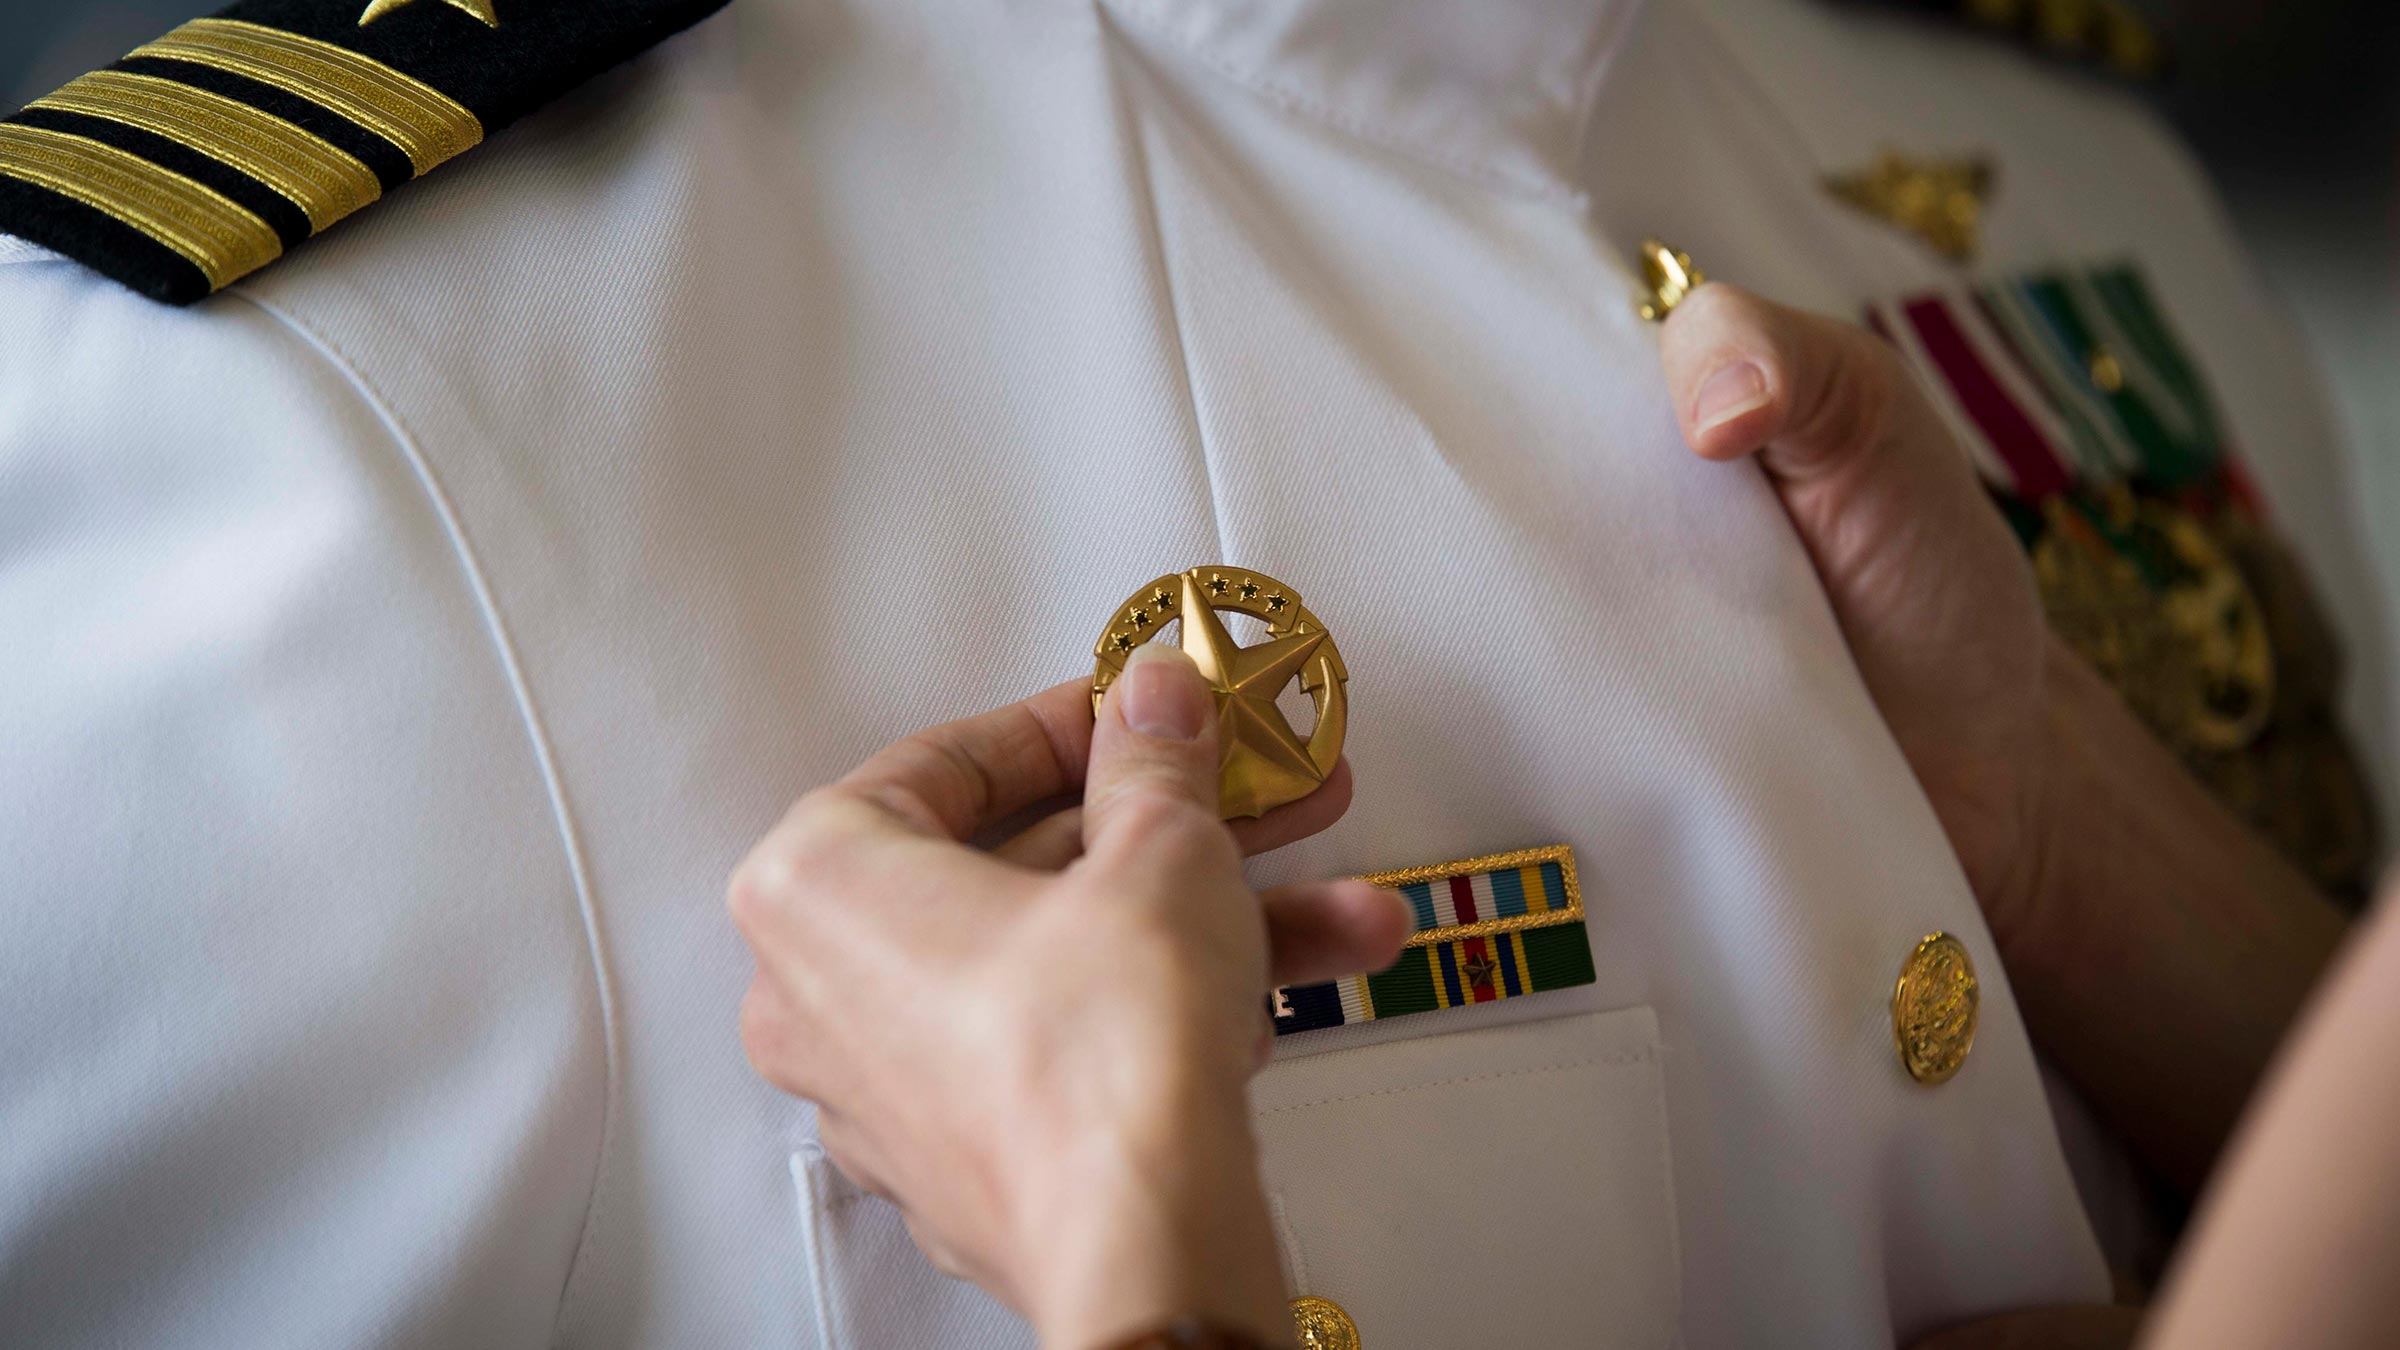 Wife pins insignia on military husband